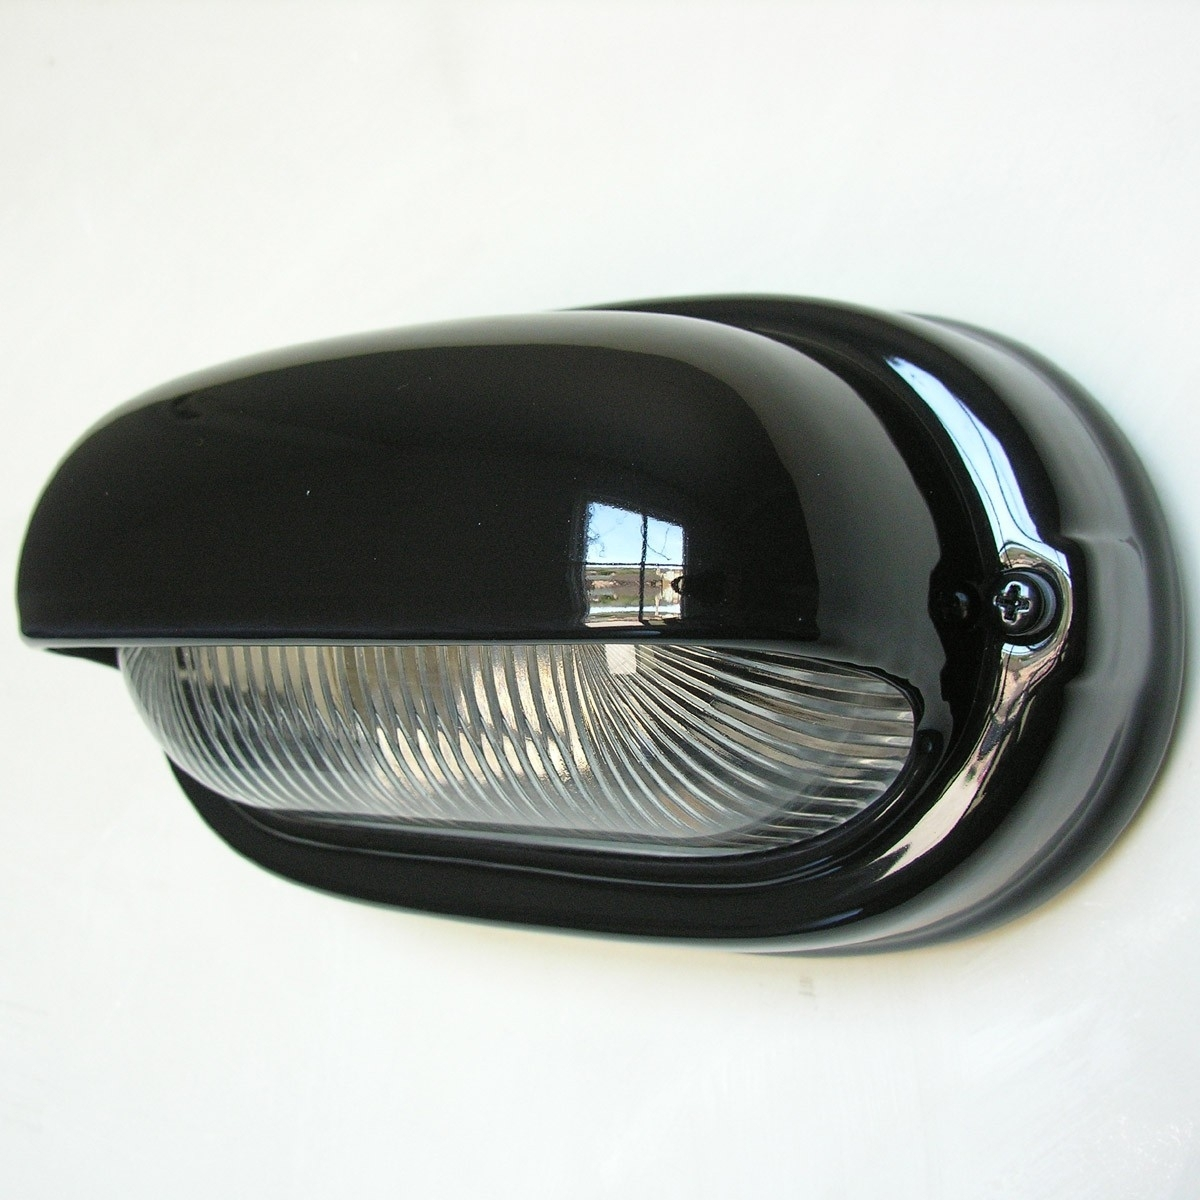 Image of: Bulkhead Lights Lighting Pertaining To Outdoor Bulkhead Lighting Wonderful Garden Outdoor Bulkhead Lighting